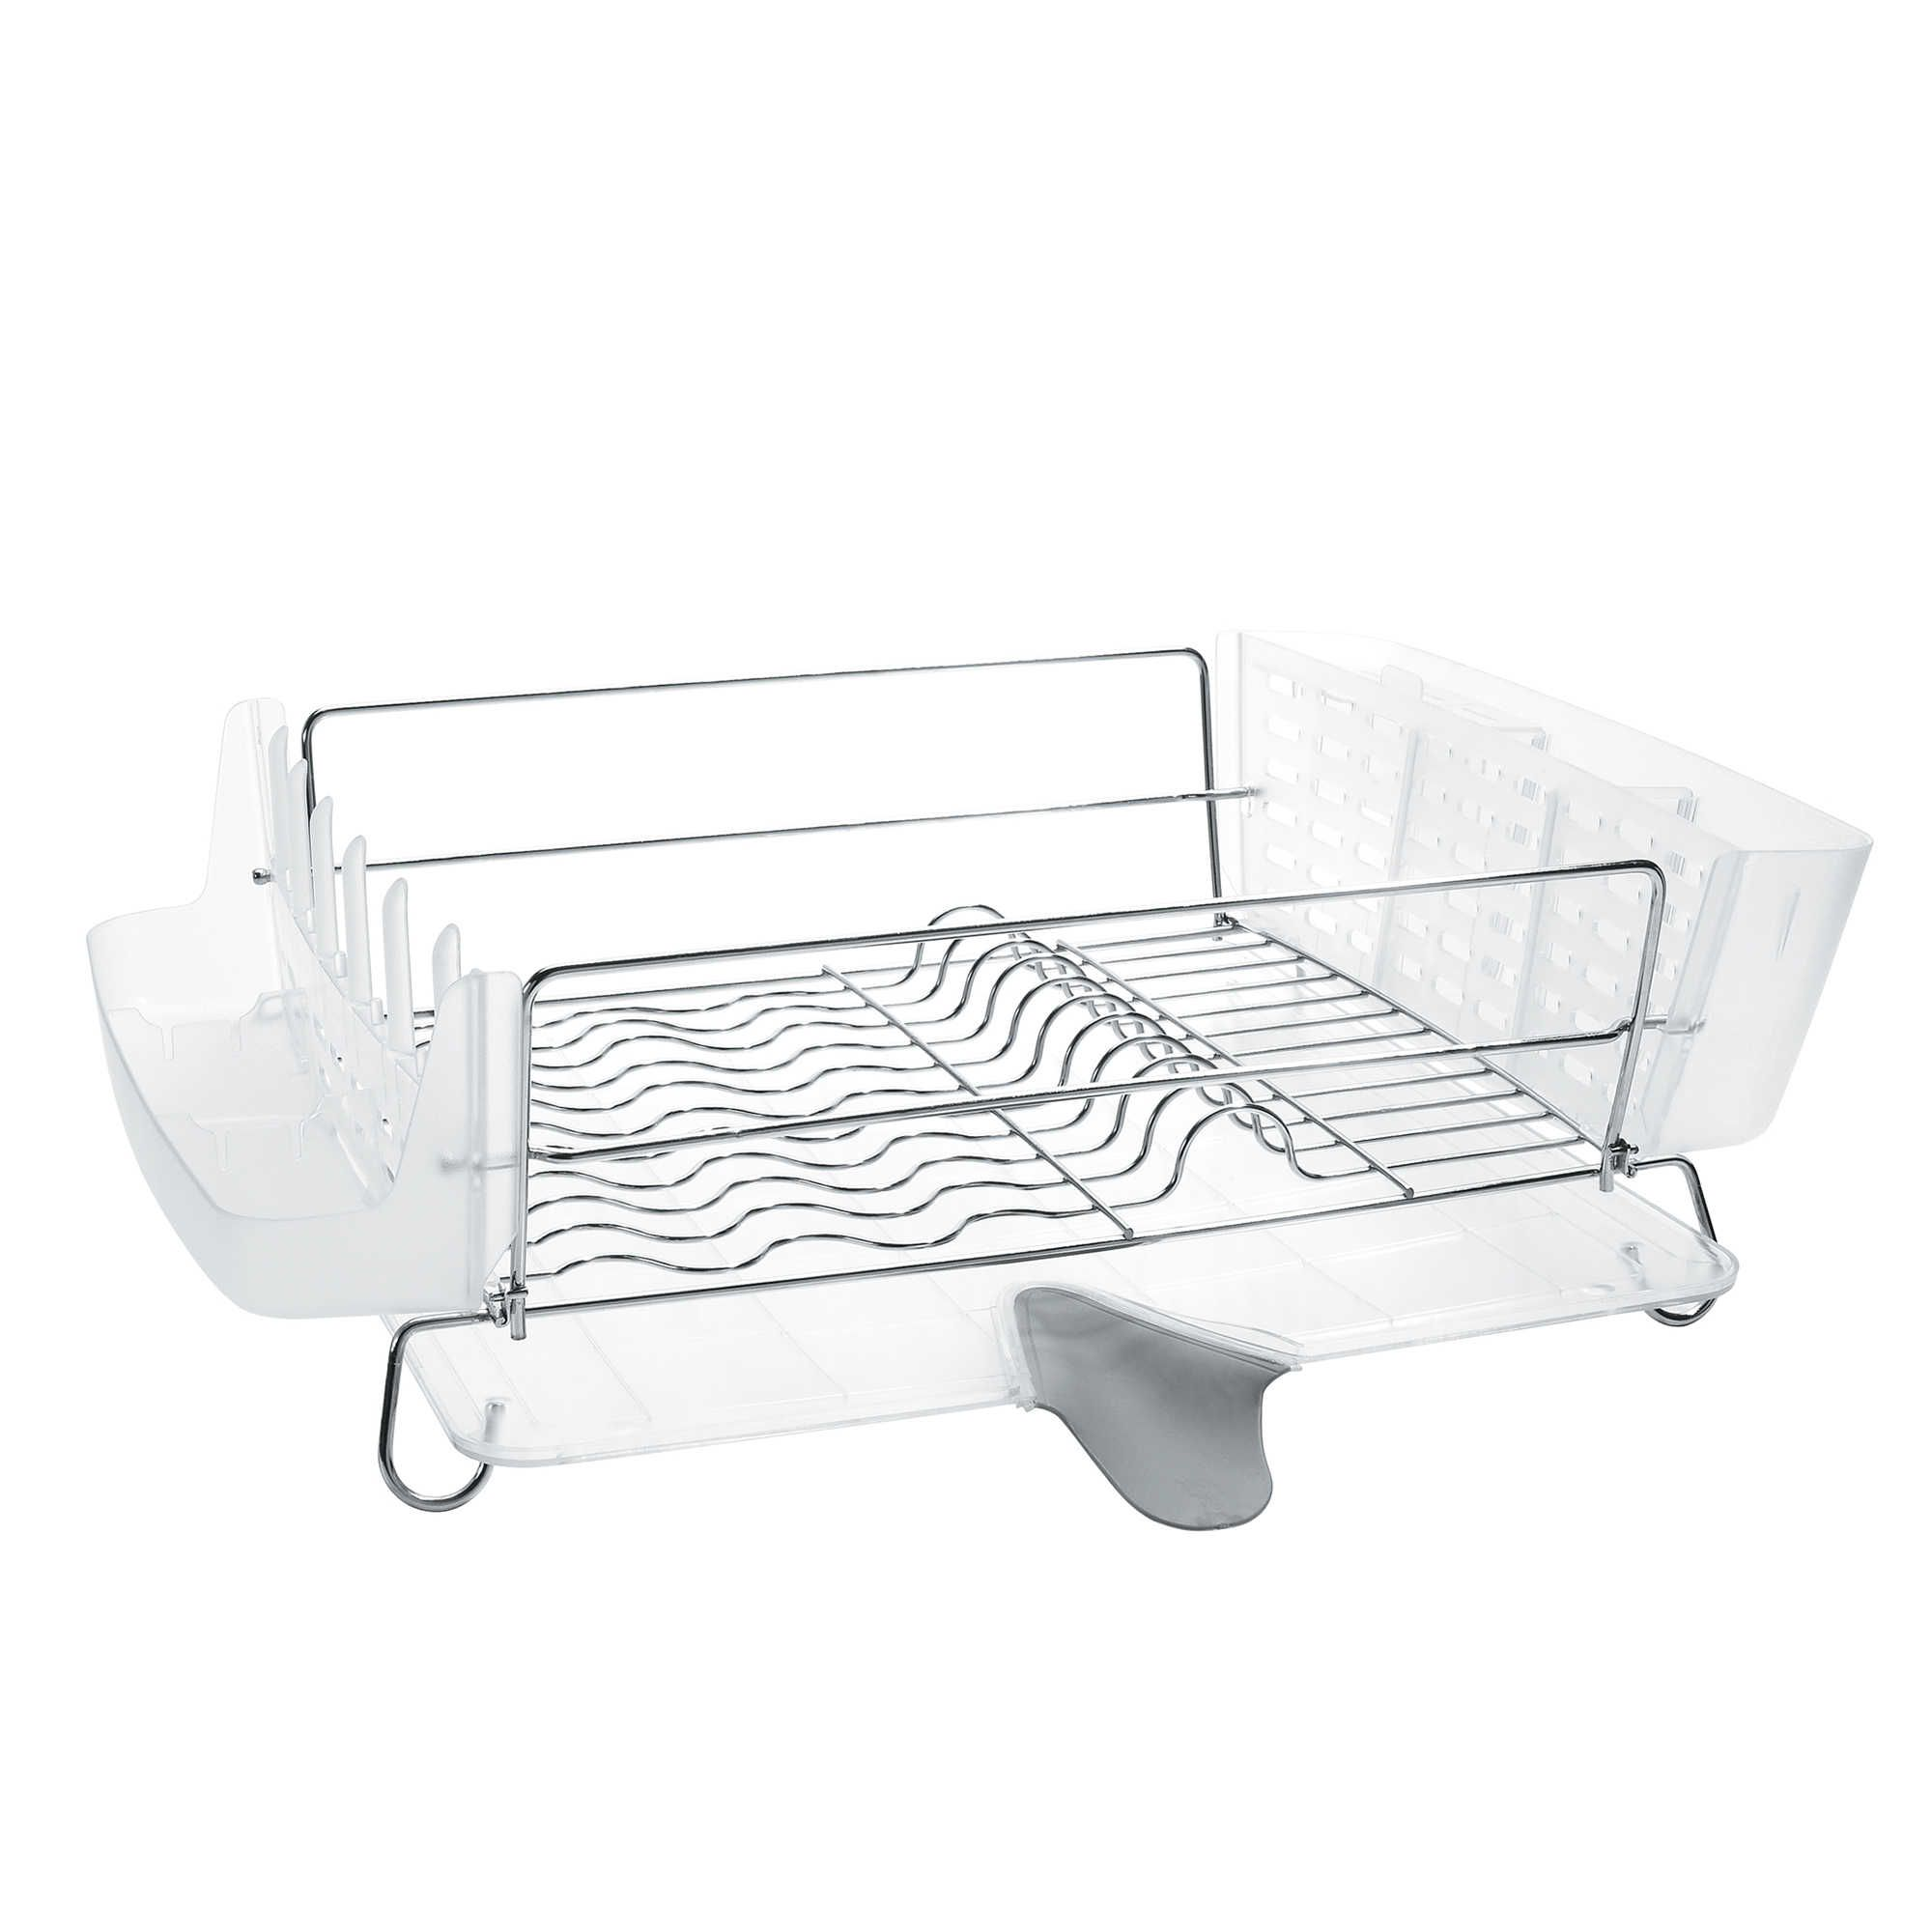 Oxo Good Grips Folding Stainless Steel Dish Rack Delectable Oxo Good Grips® Folding Stainless Steel Dish Rack  Dish Racks Design Inspiration